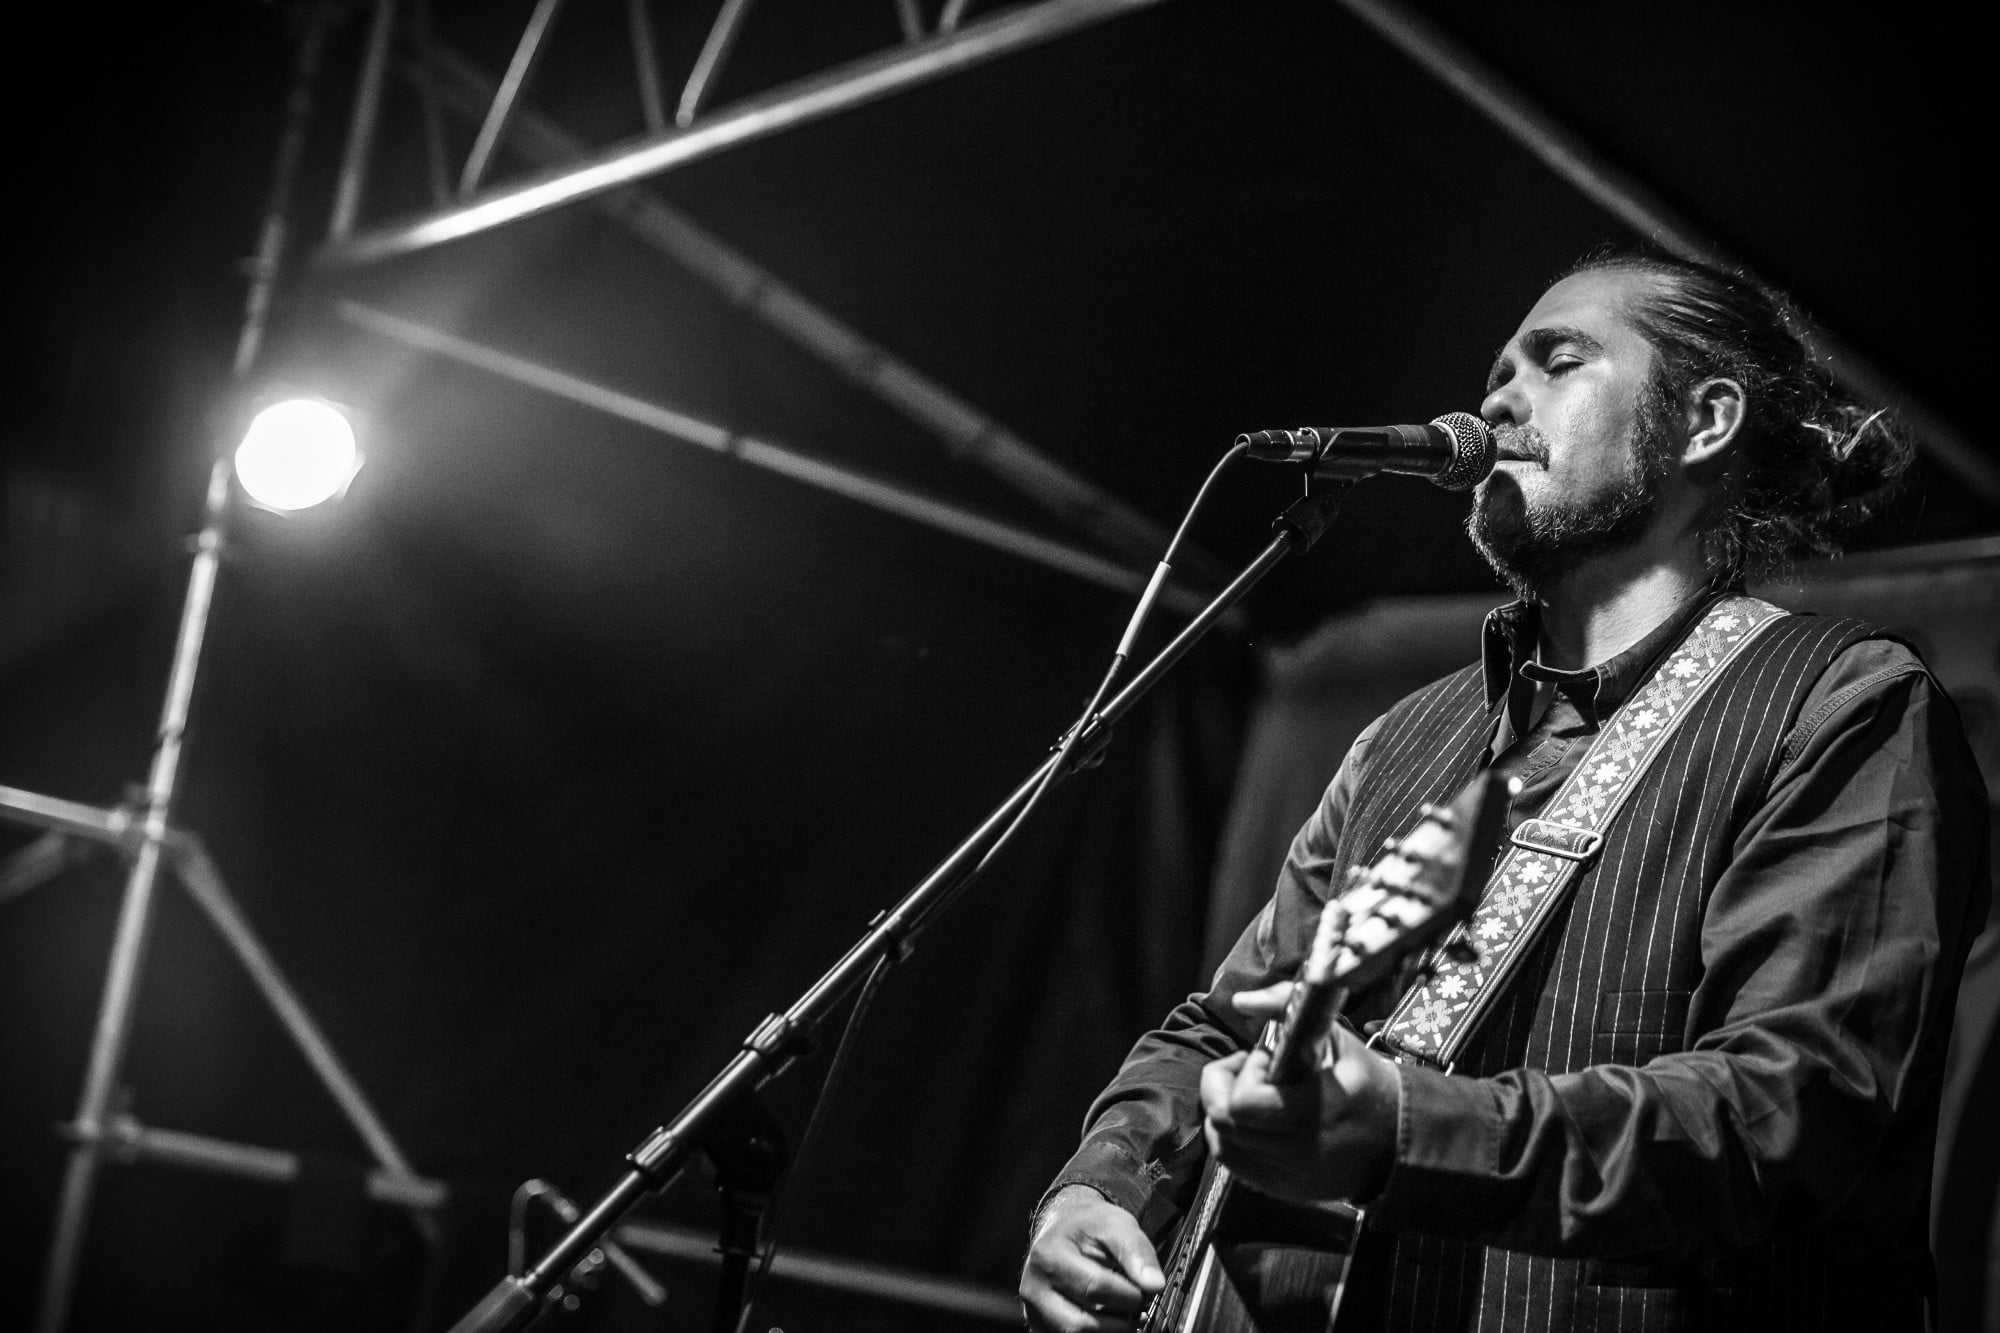 The Passion of Citizen Cope